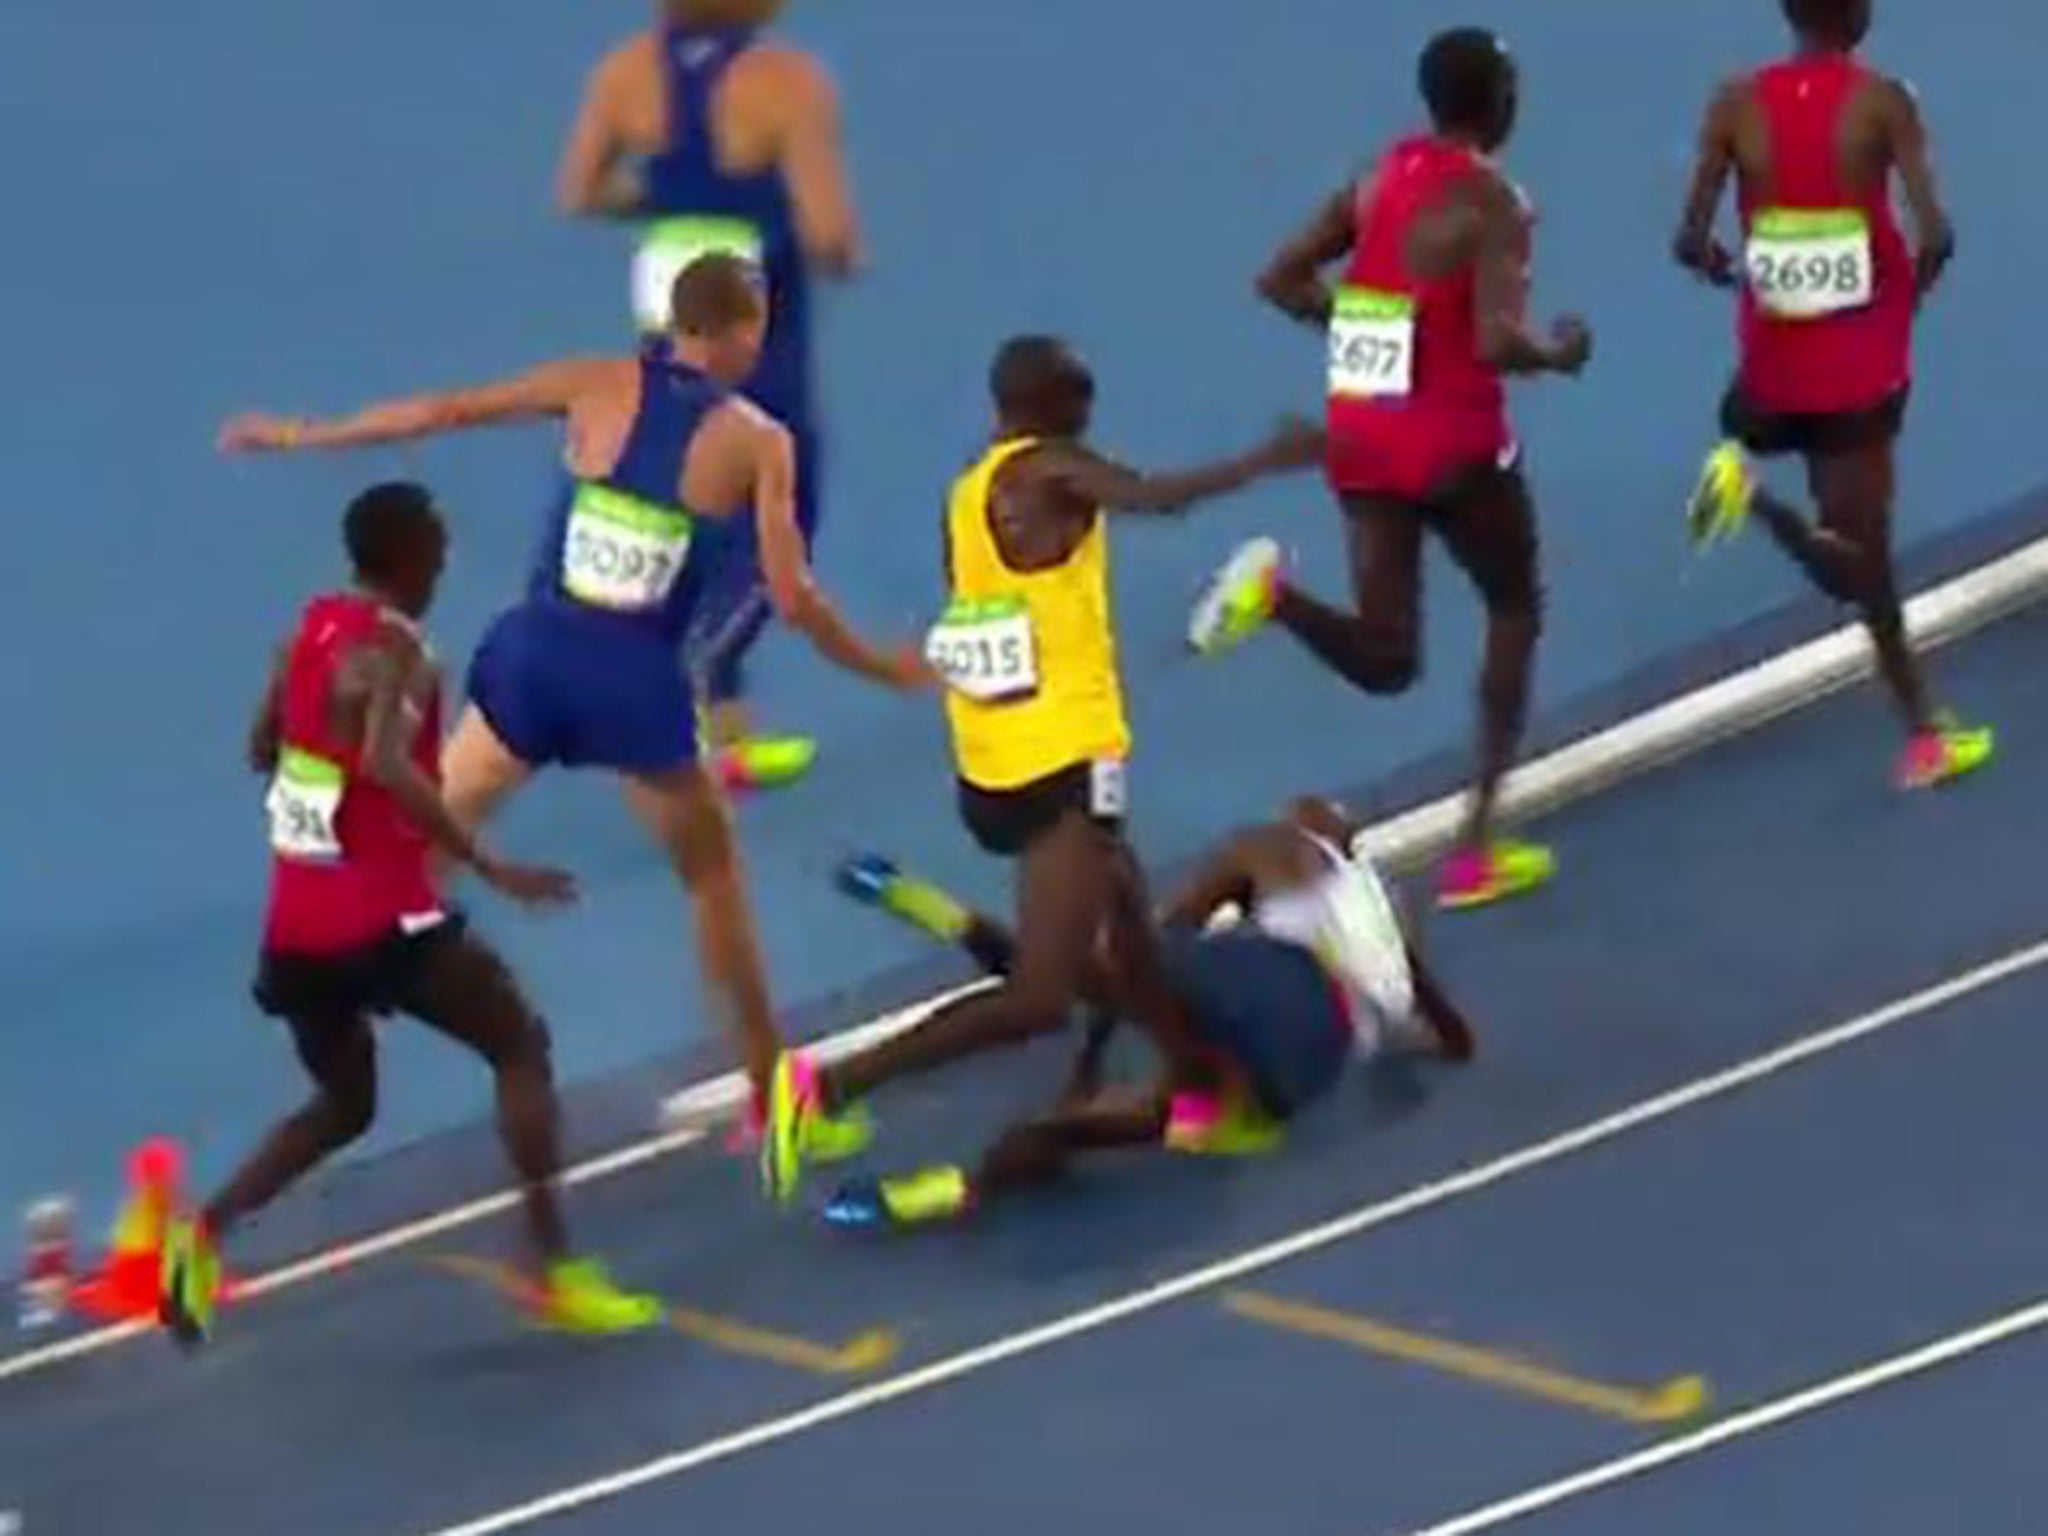 Rio 2016: The moment Mo Farah thought his Olympic dream was over